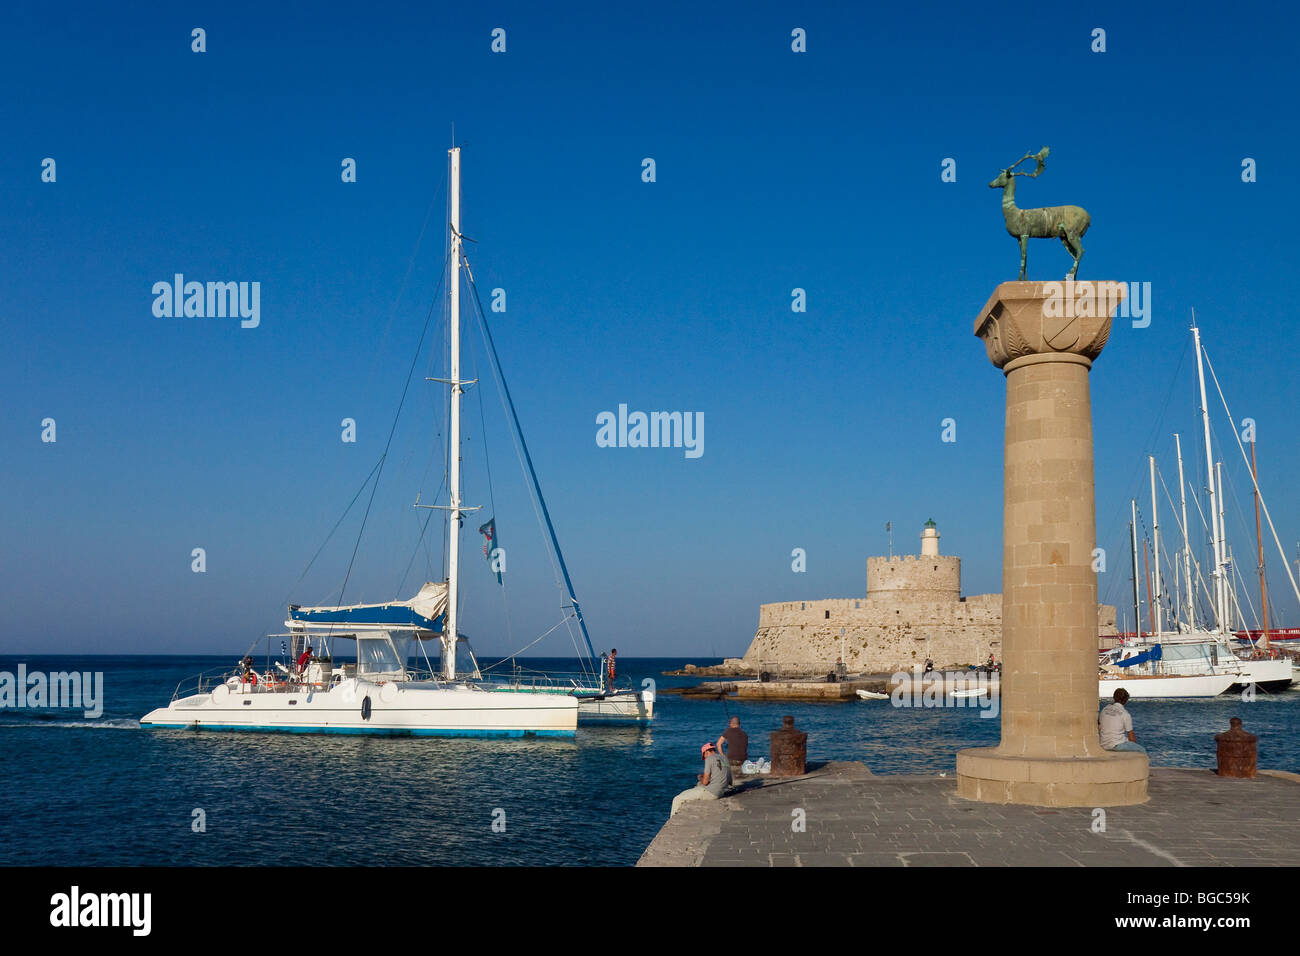 Landmark stag, a catamaran passes the harbor entrance, Rhodes town, Rhodes island, northern part of Greece, Aegean - Stock Image